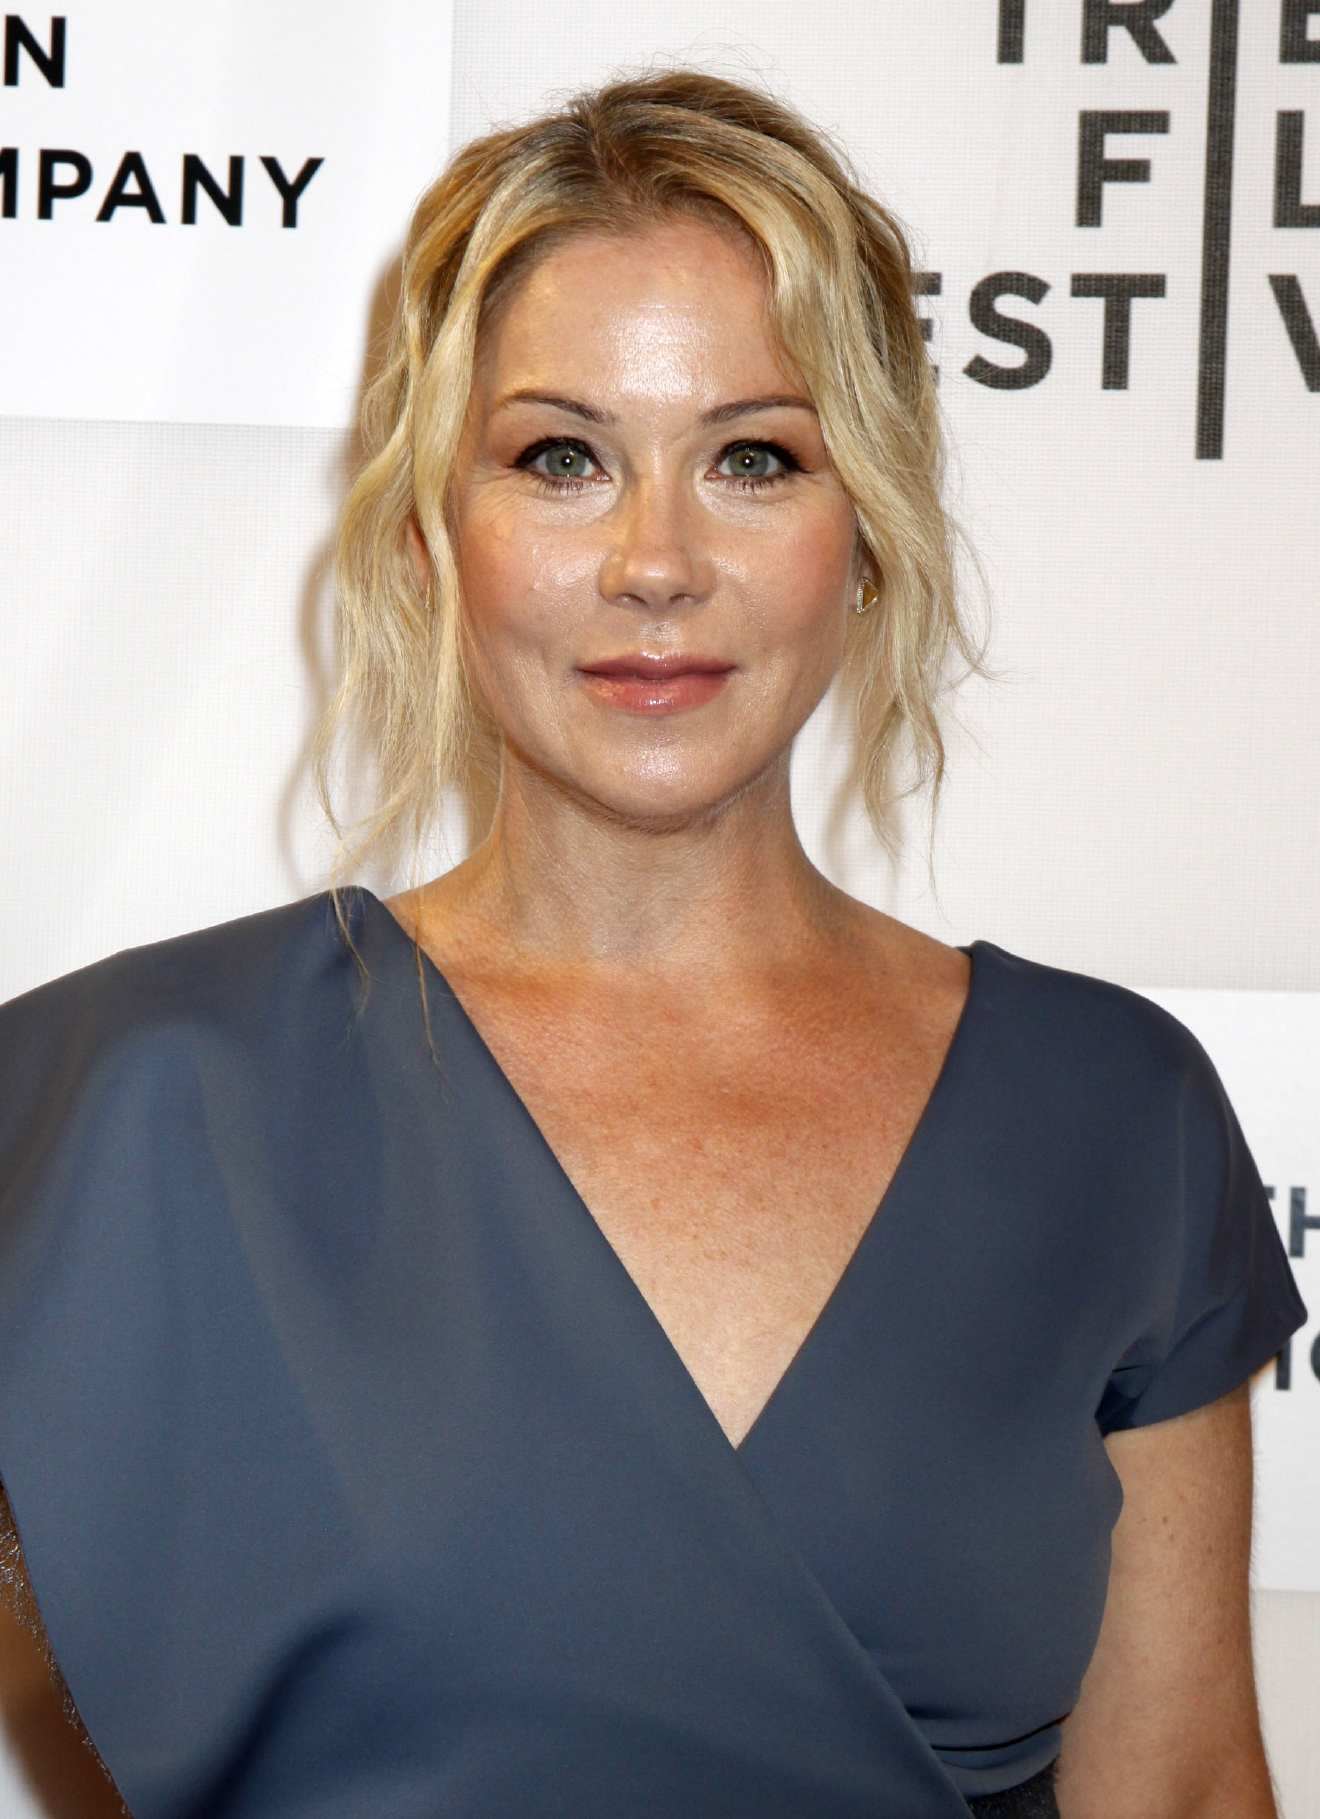 Christina Applegate attends the 2016 Tribeca Film Festival in New York City                                    Featuring: Christina Applegate                  Where: New York City, New York, United States                  When: 17 Apr 2016                  Credit: Michael Carpenter/WENN.com                                    **Not available for New York Daily News.**